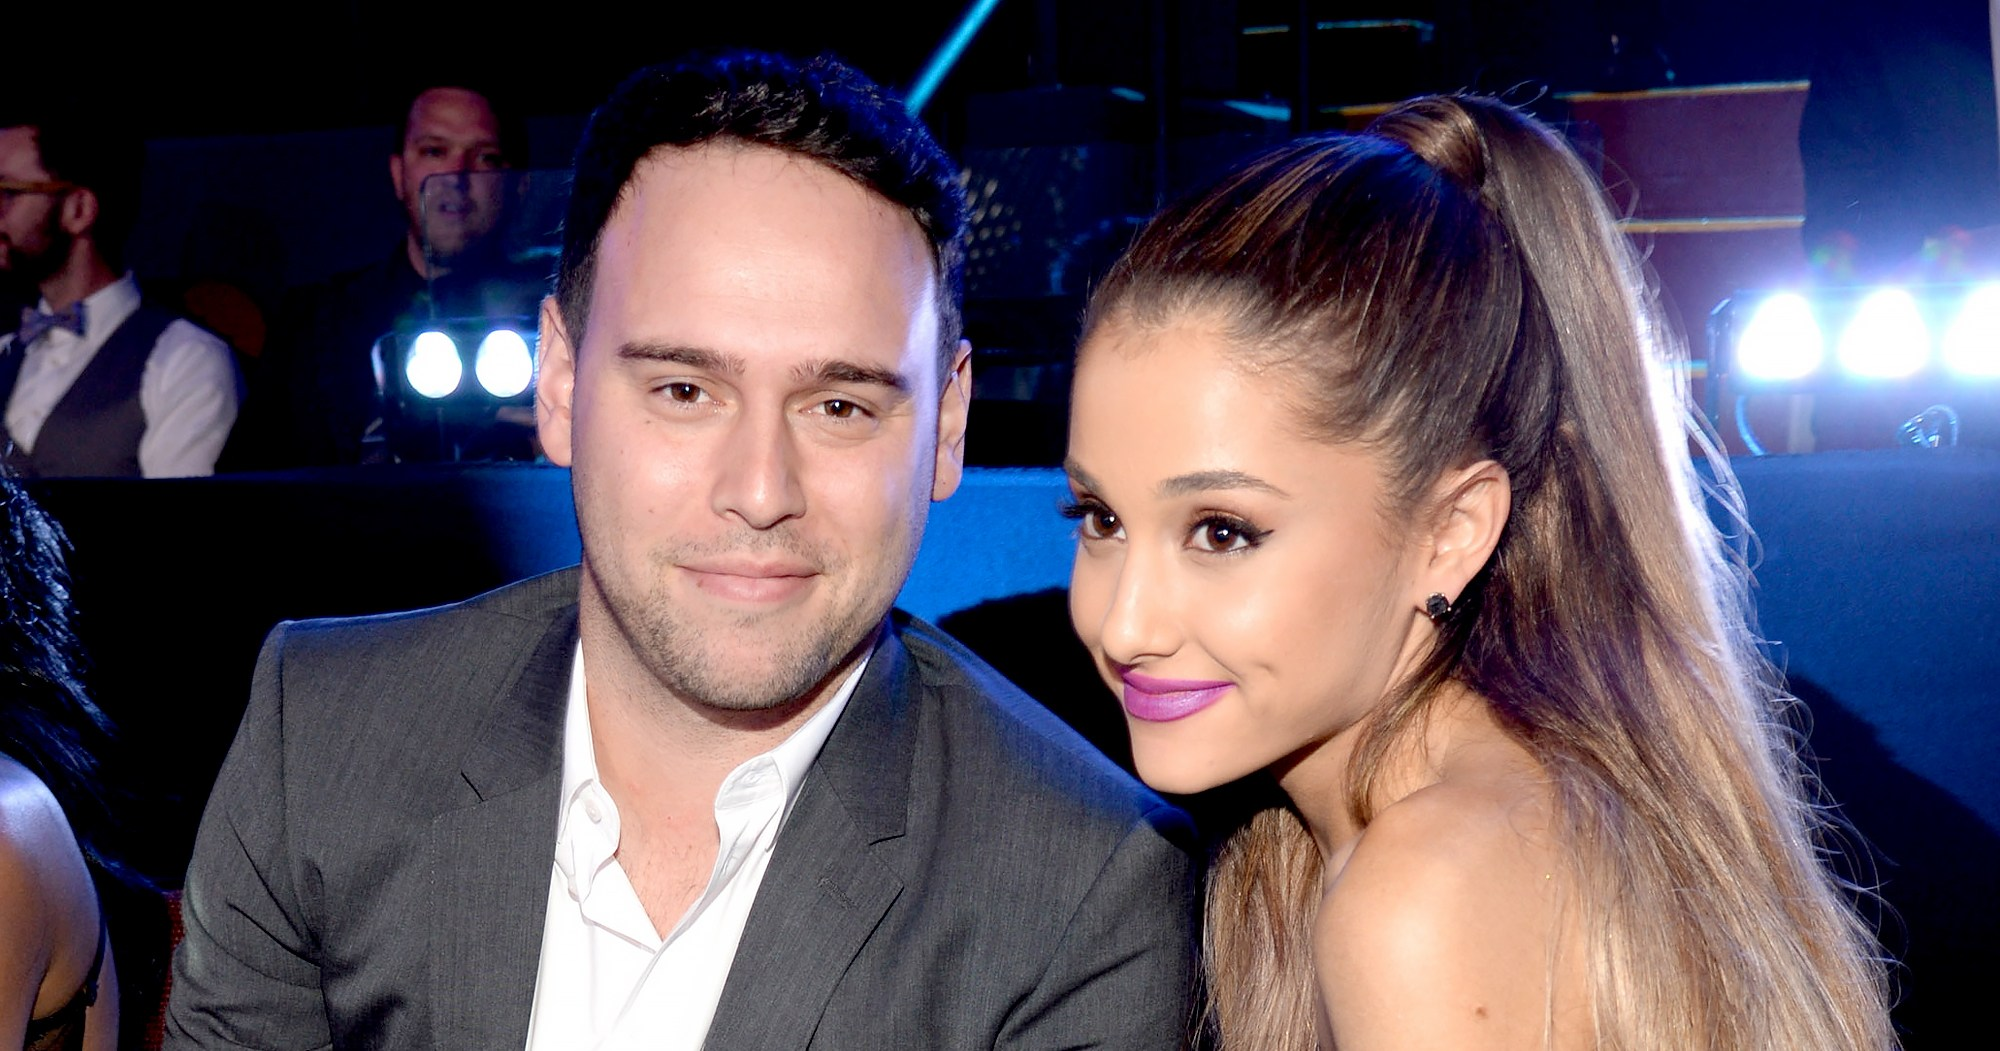 Scooter Braun Shades Grammys While Watching With Ariana Grande